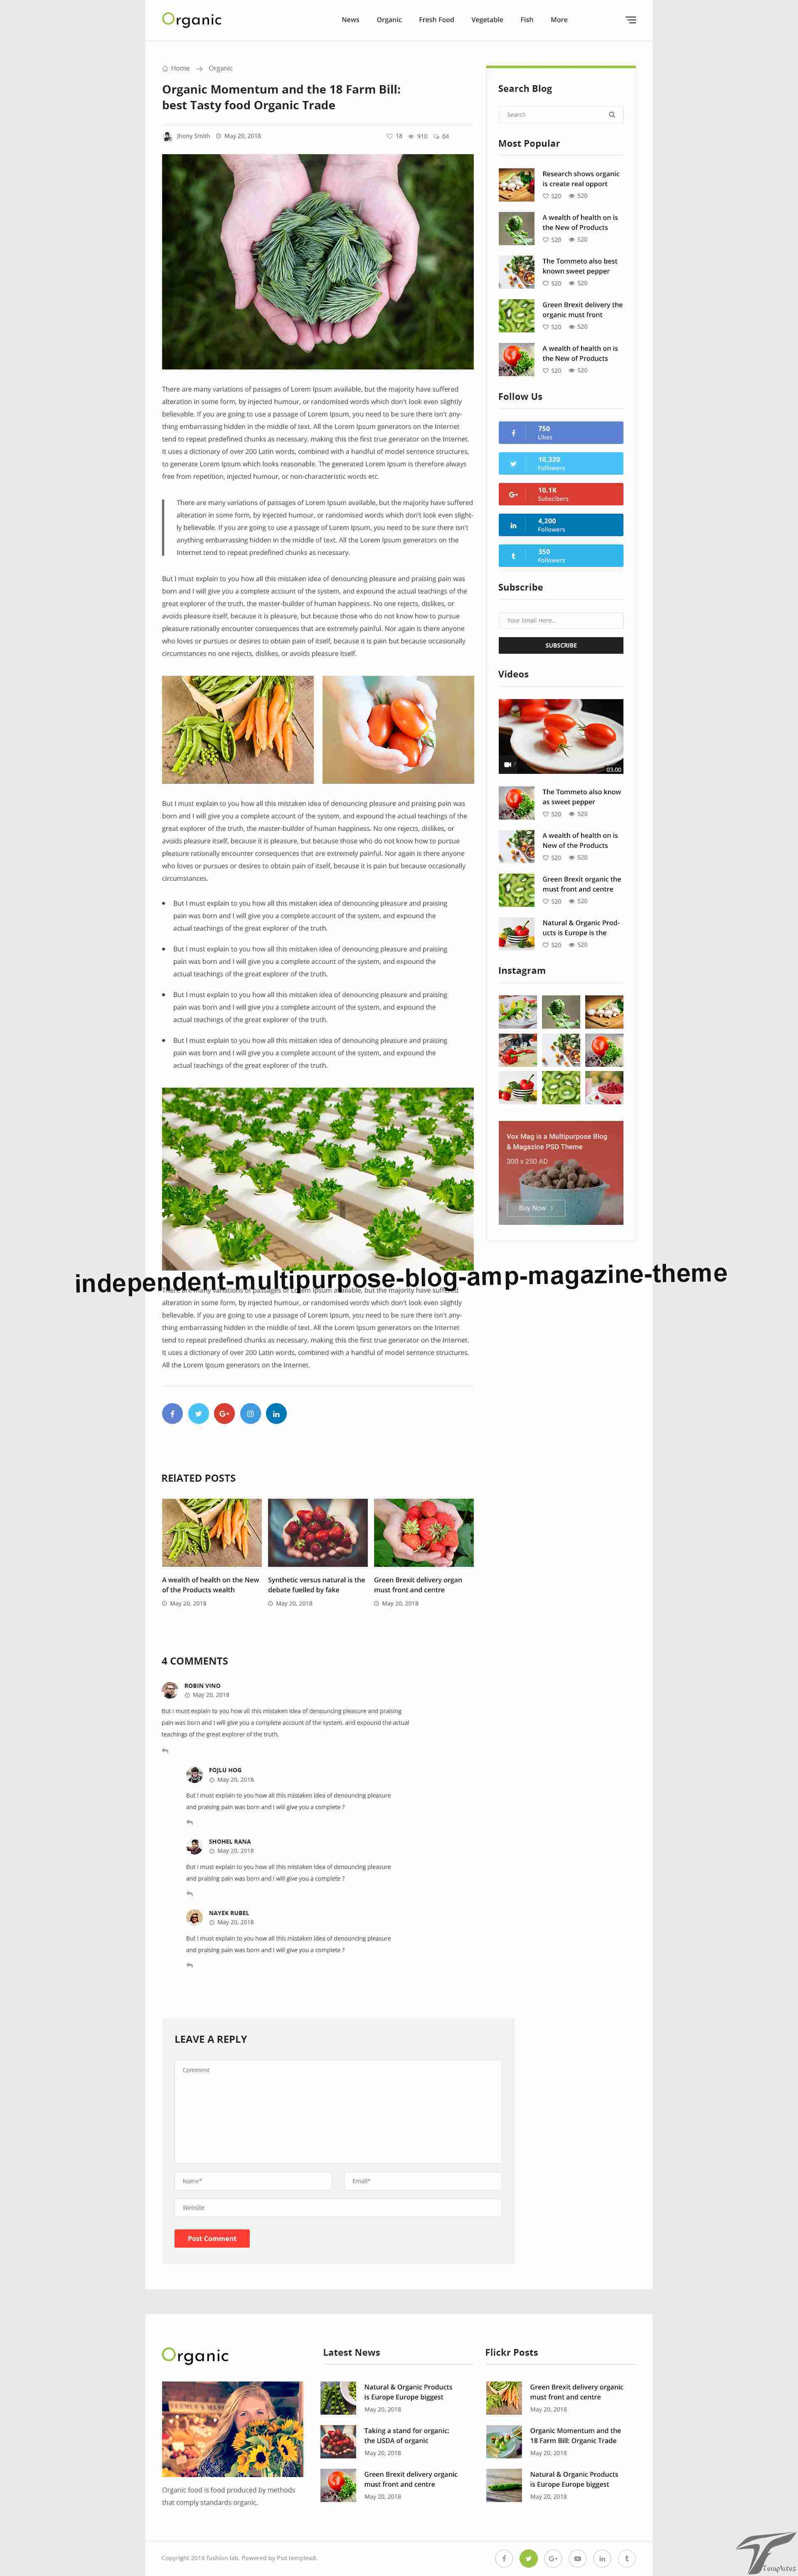 https://images.besthemes.com/images/h1_independent-multipurpose-blog-amp-magazine-theme51-_-249989416/Theme-s20s-Preview/50-Details.jpg